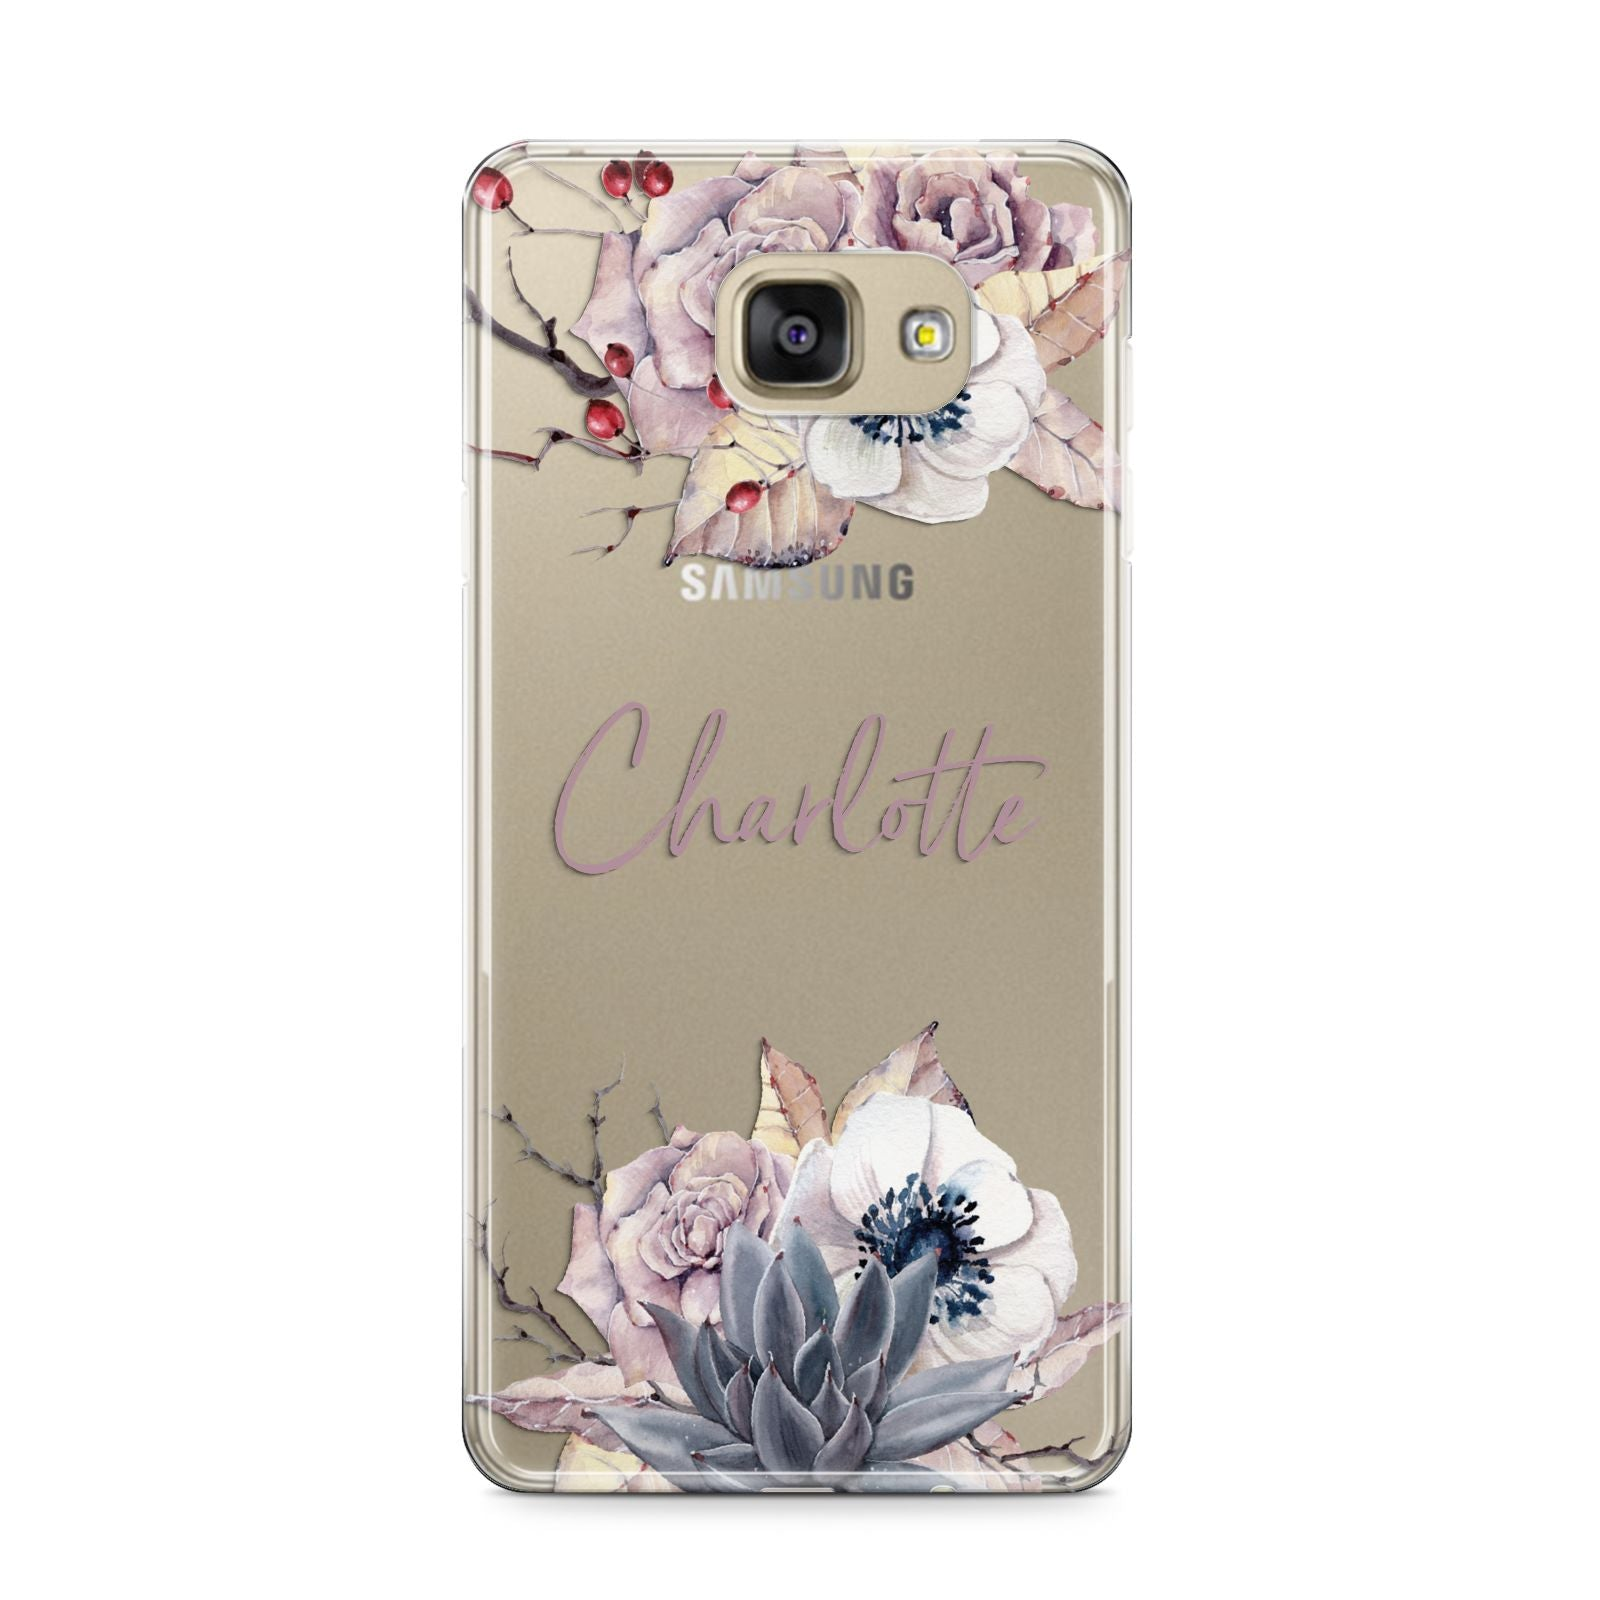 Personalised Autumn Floral Samsung Galaxy A9 2016 Case on gold phone